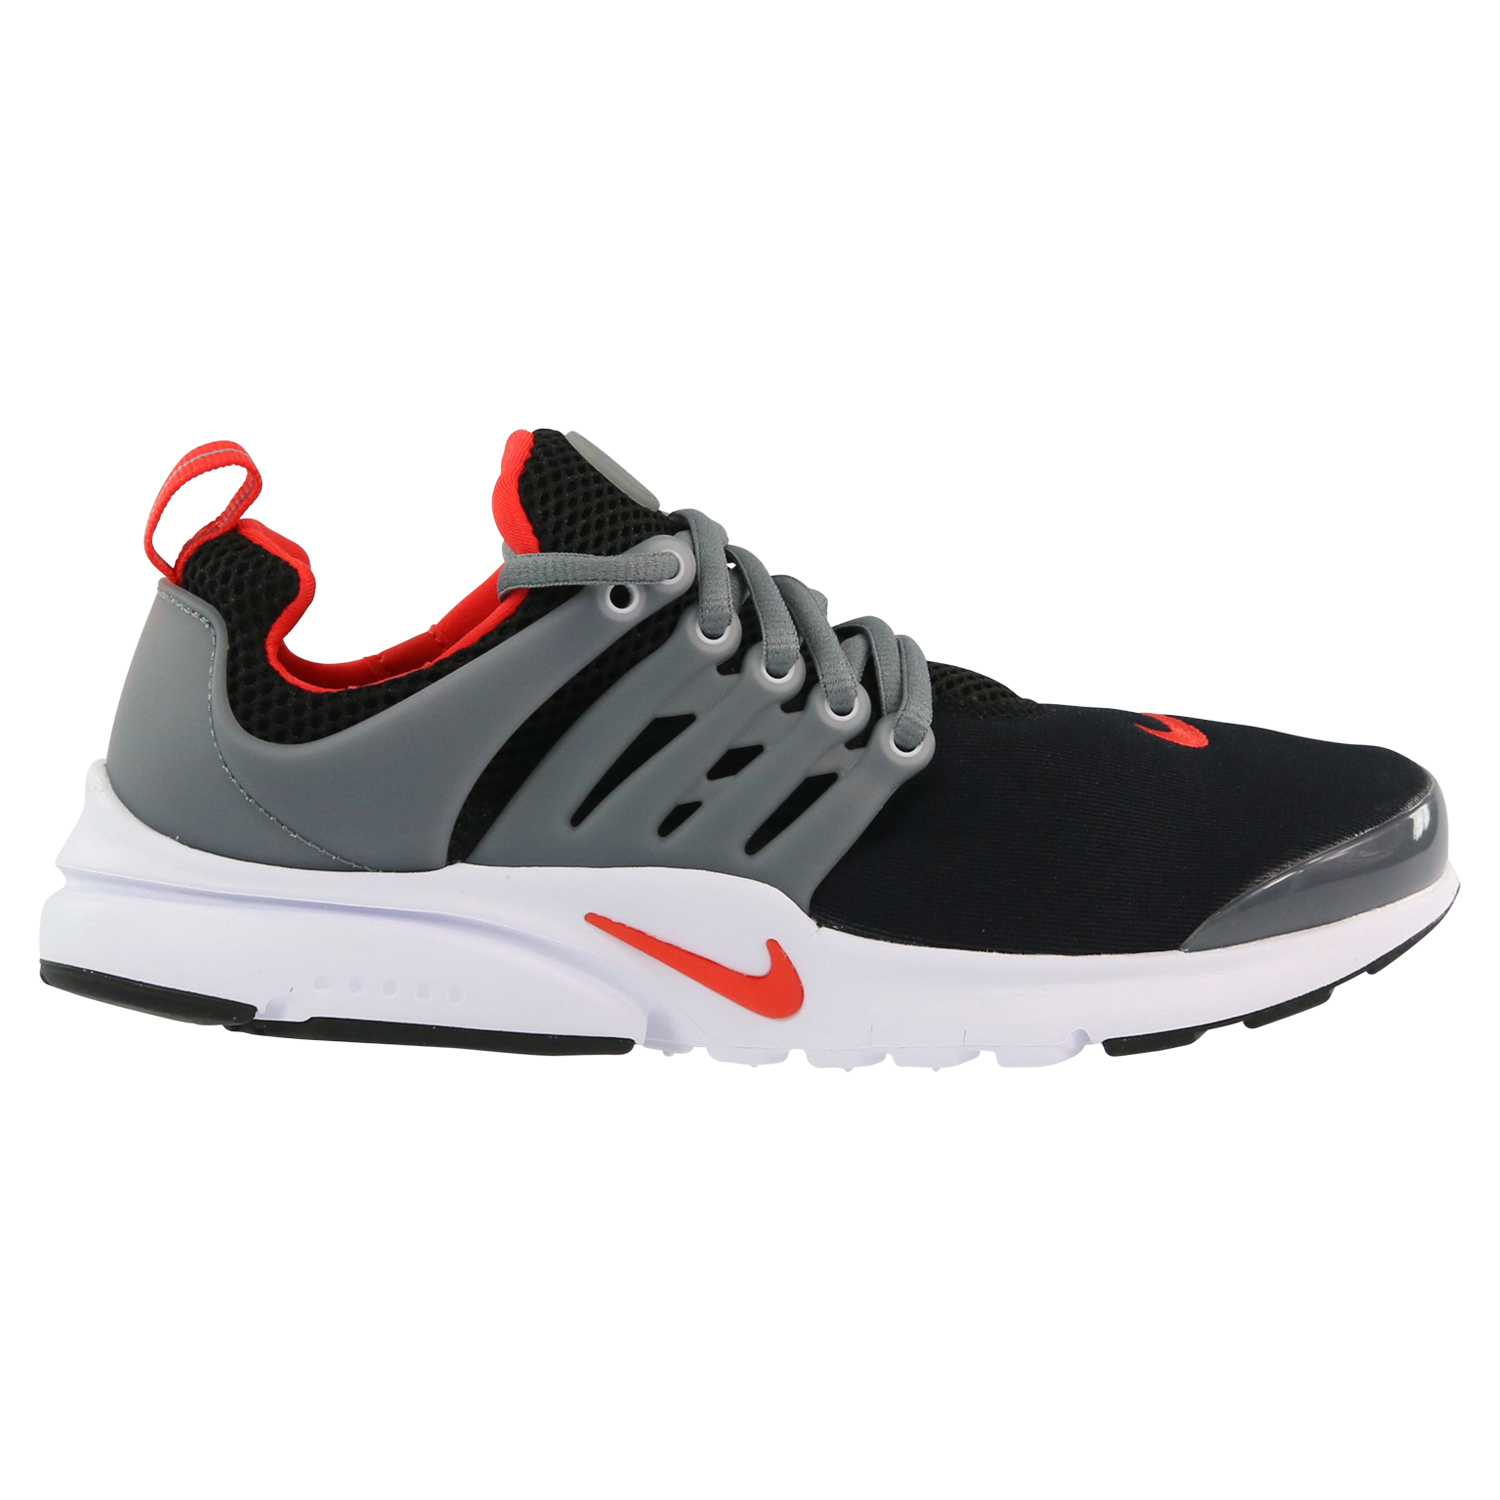 nike presto gs schuhe turnschuhe sneaker jungen m dchen. Black Bedroom Furniture Sets. Home Design Ideas